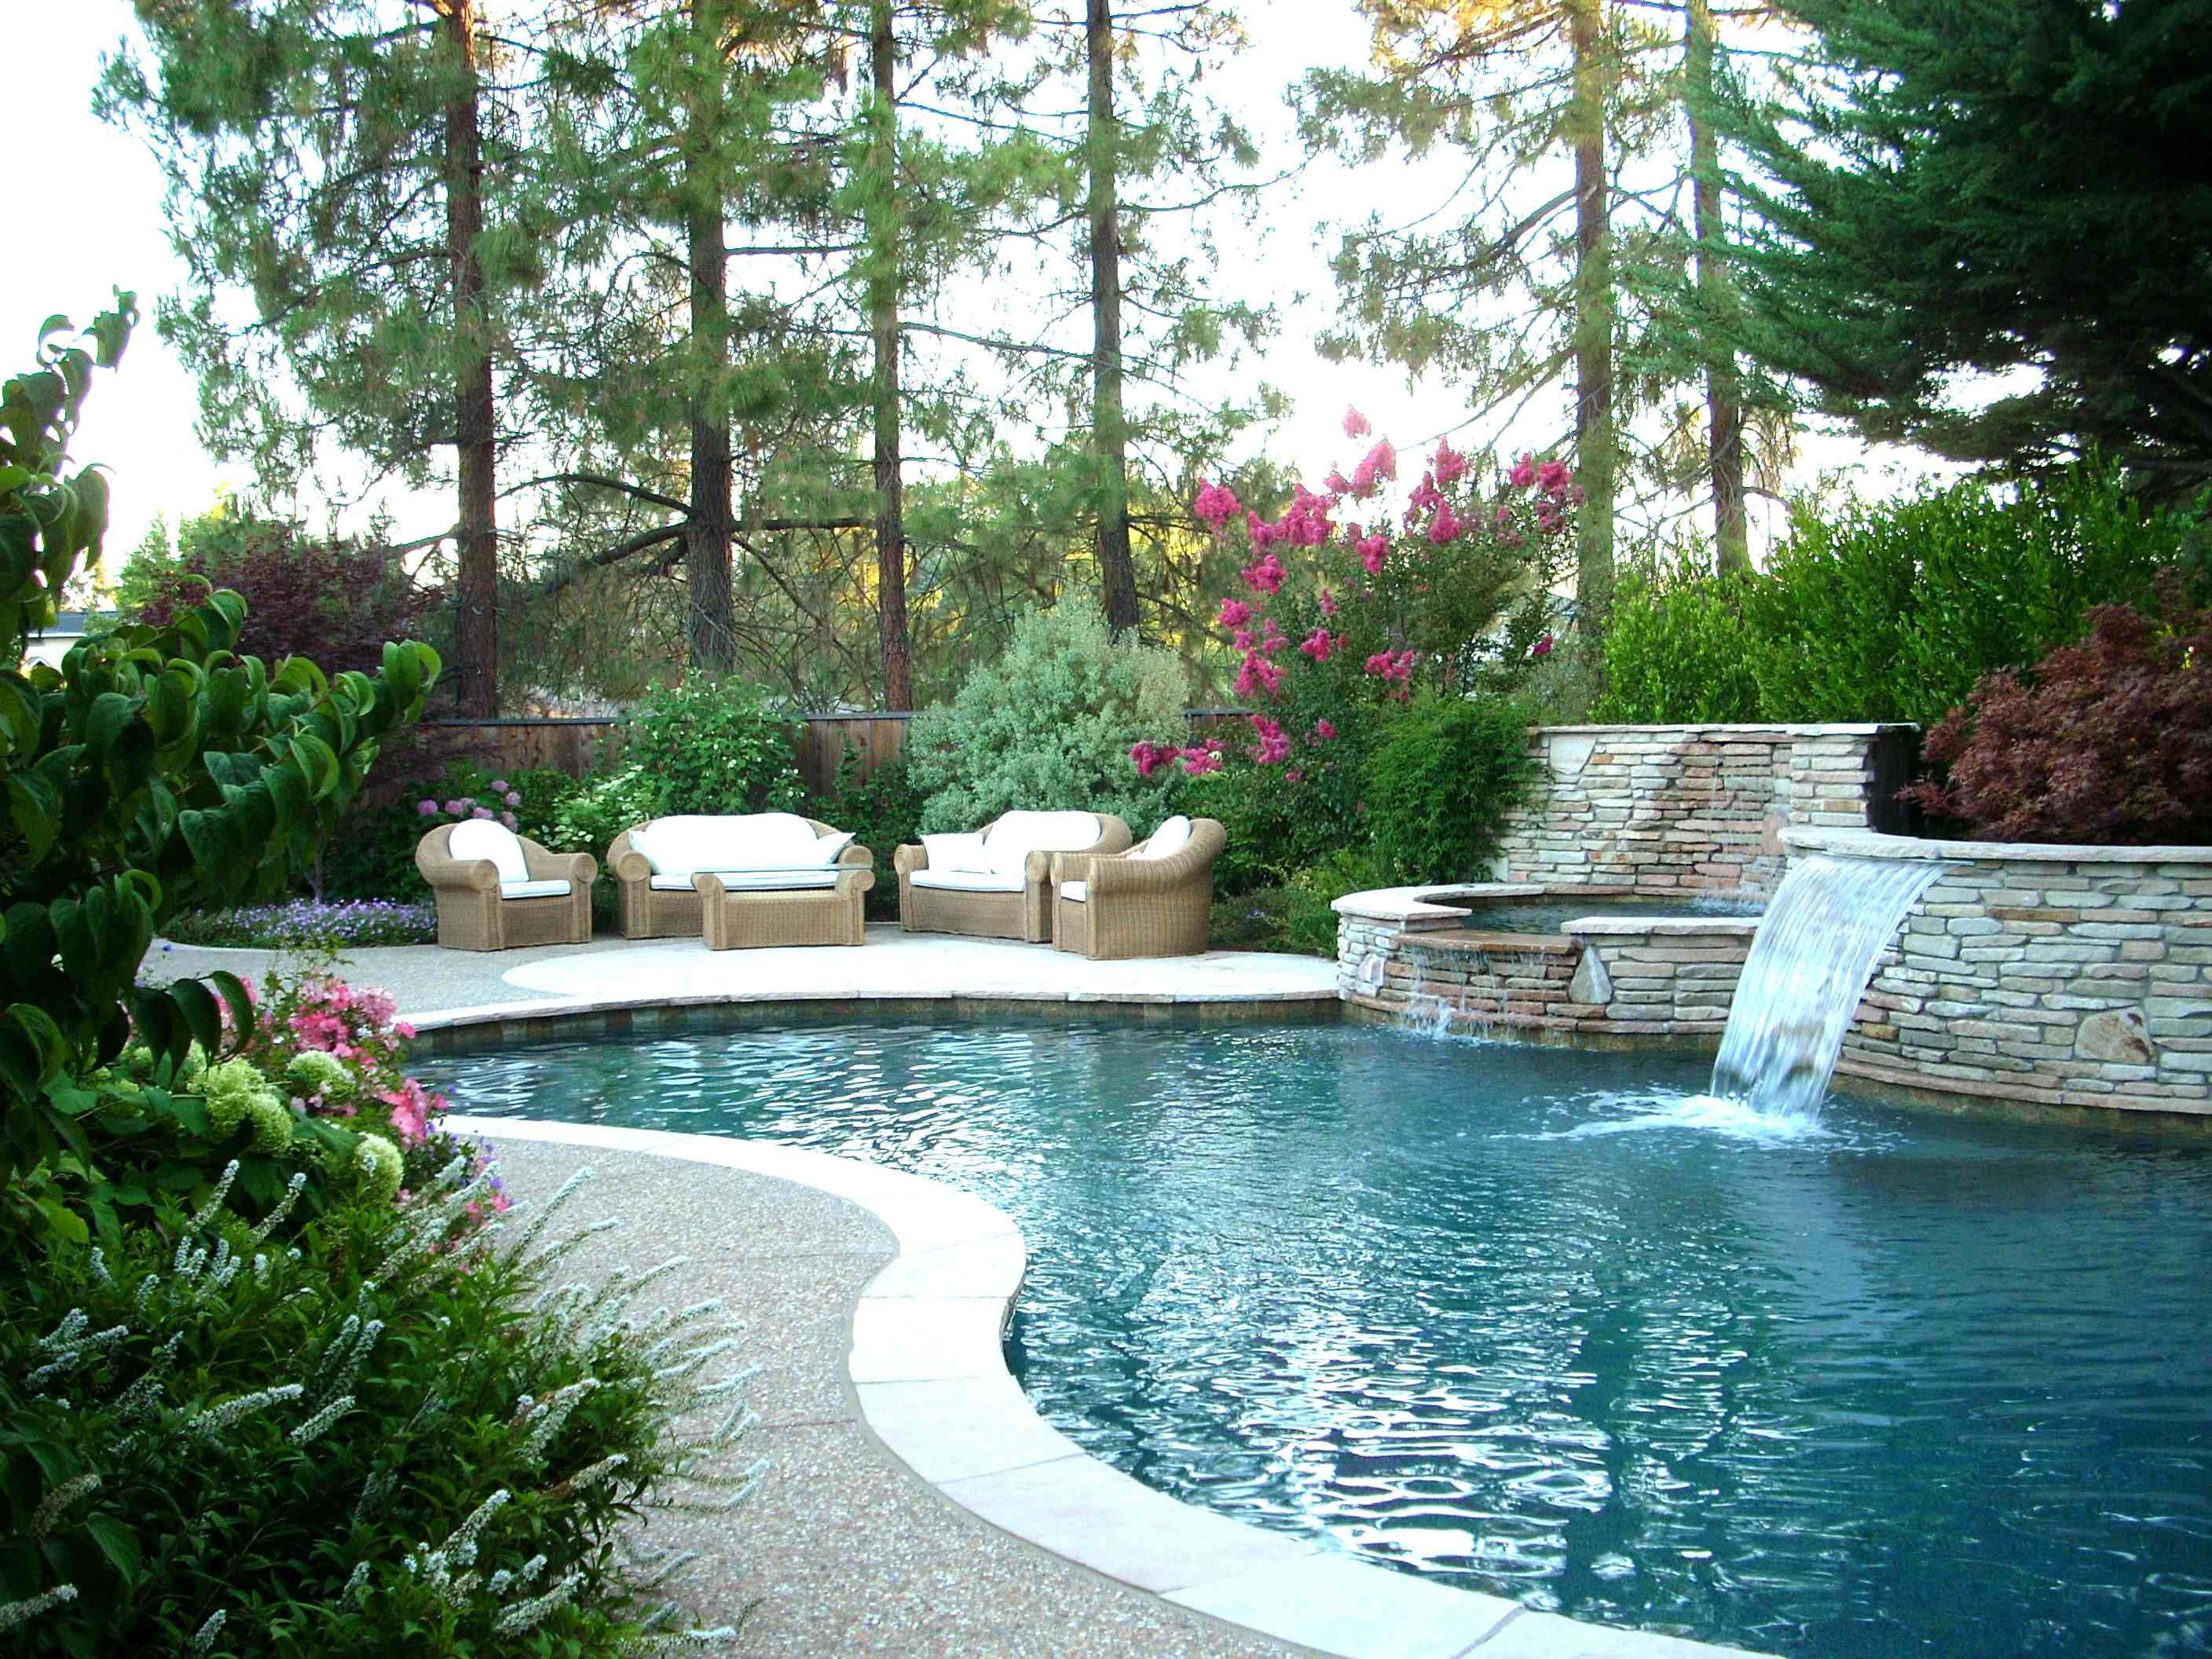 Backyard pool landscaping ideas homesfeed for Pictures of landscaping ideas